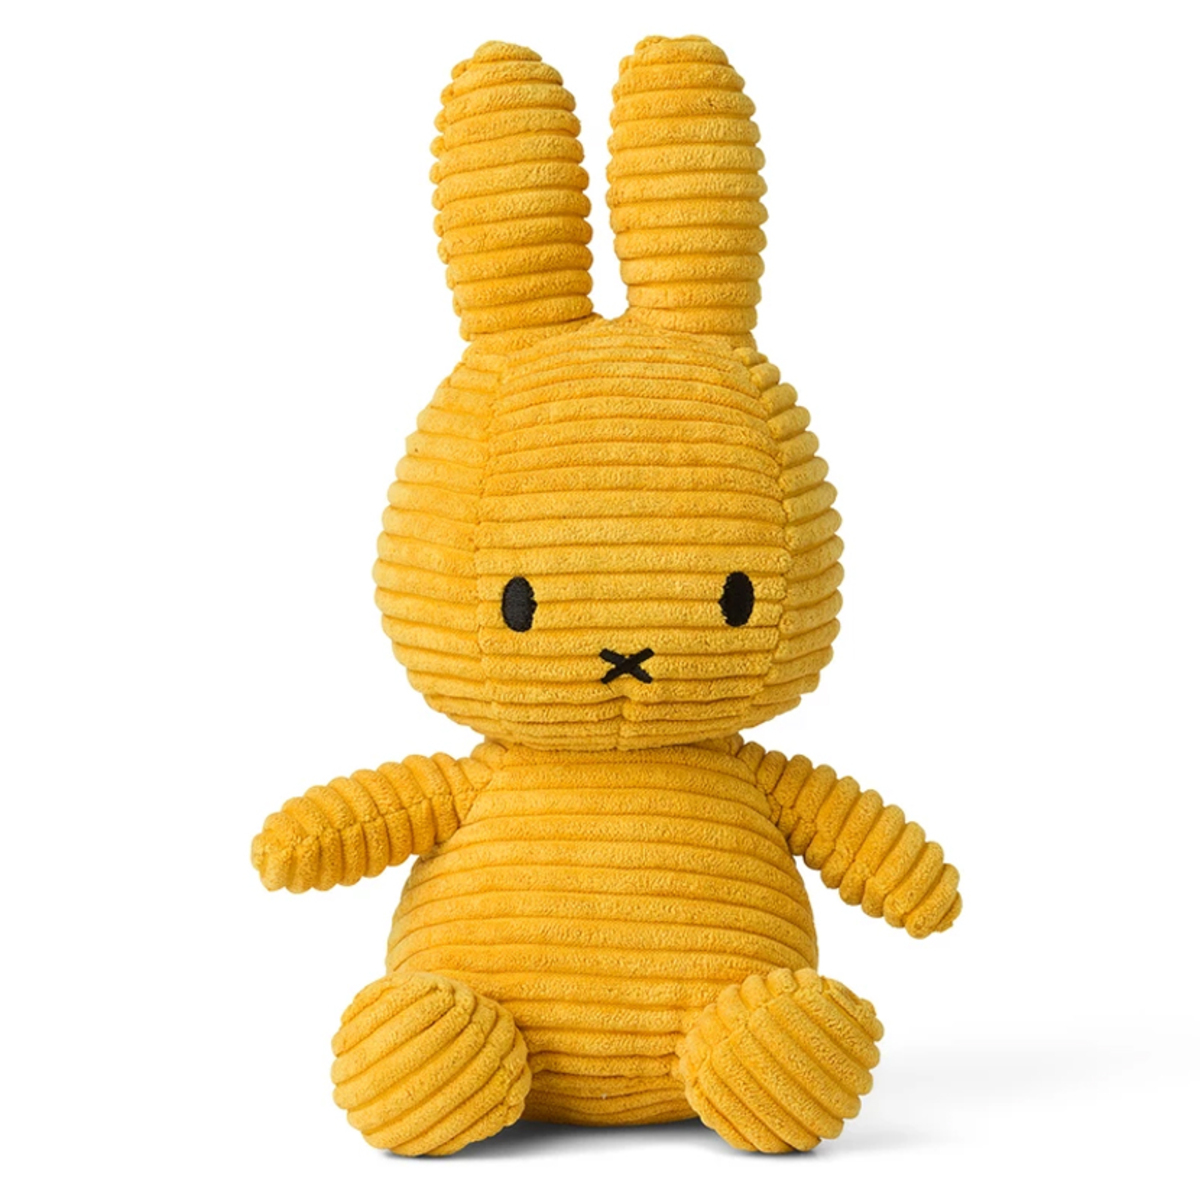 Peluche Lapin Miffy Moutarde - Grand Peluche Lapin Miffy Moutarde 50 cm